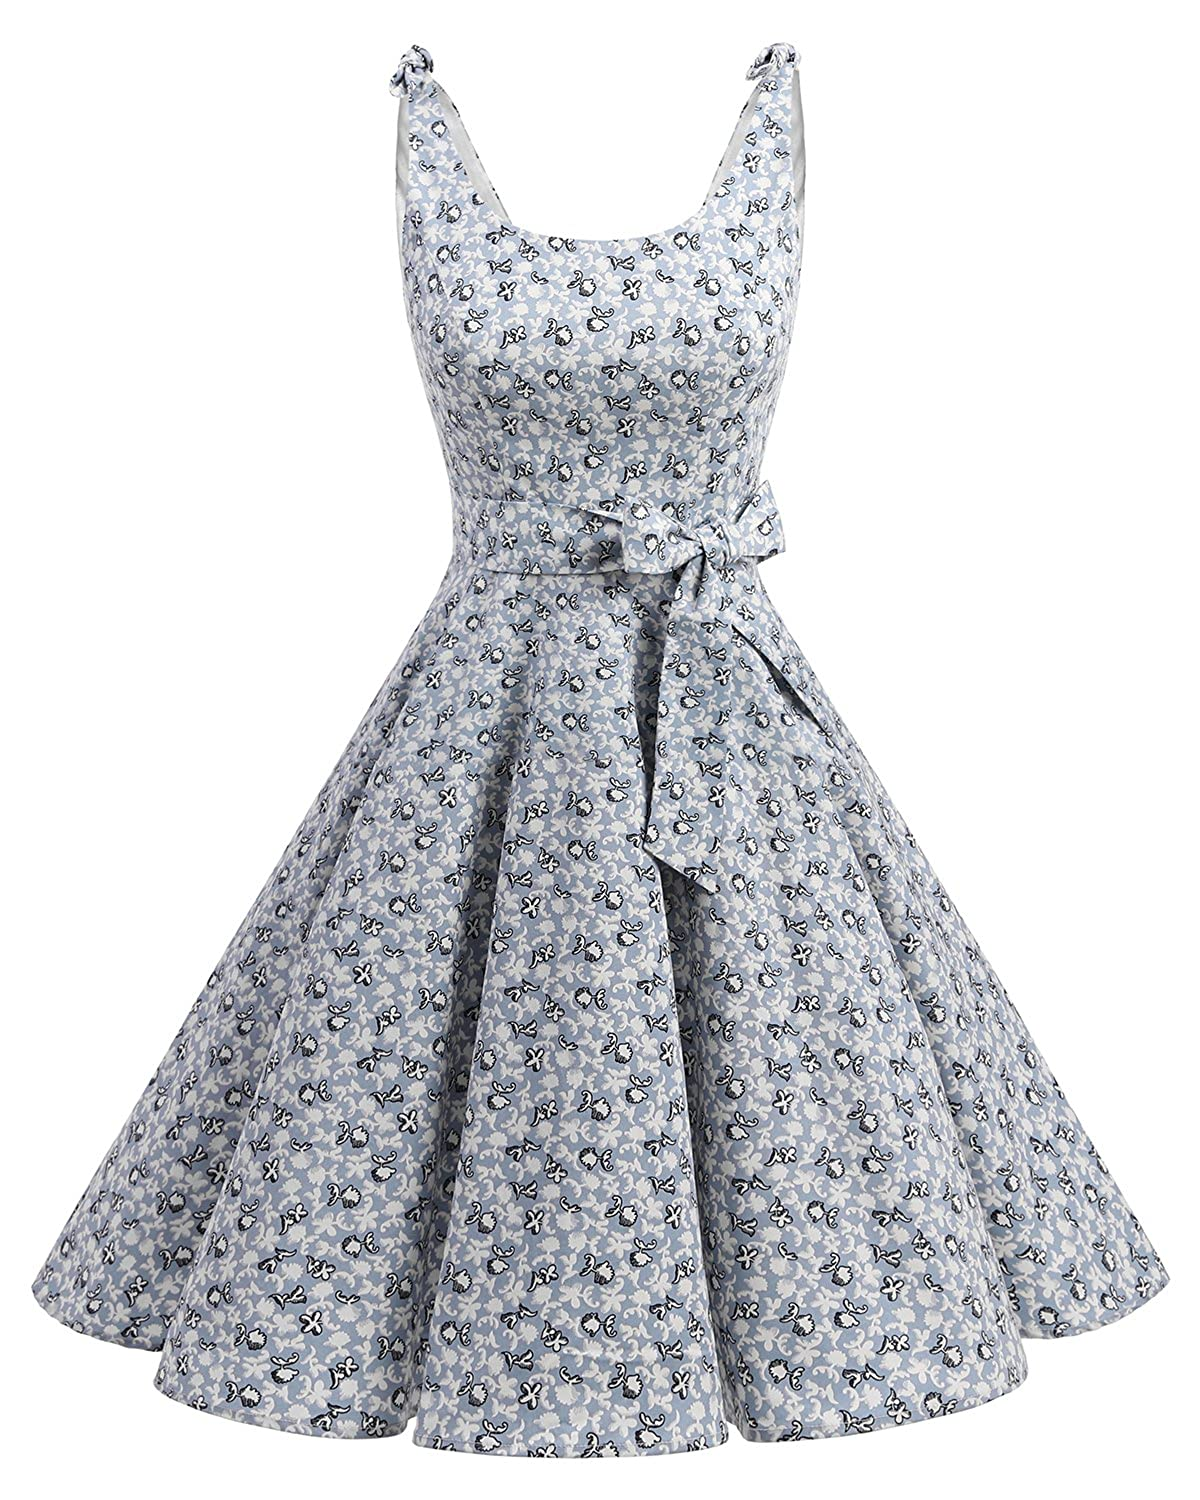 TALLA L. Bbonlinedress Vestidos de 1950 Estampado Vintage Retro Cóctel Rockabilly con Lazo Little Flowers